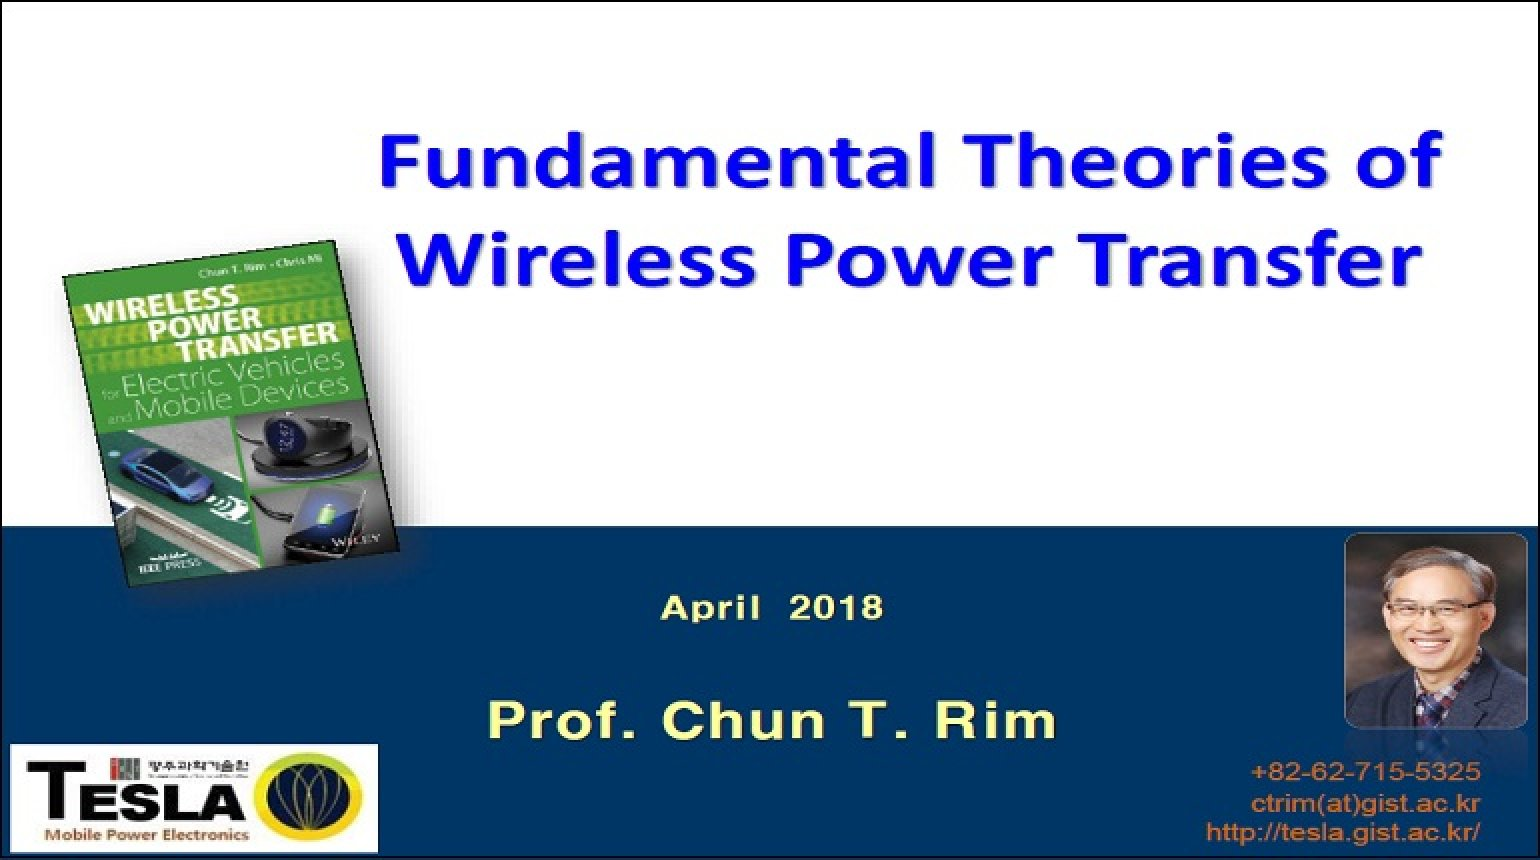 Fundamental Theories of Wireless Power Transfer Video